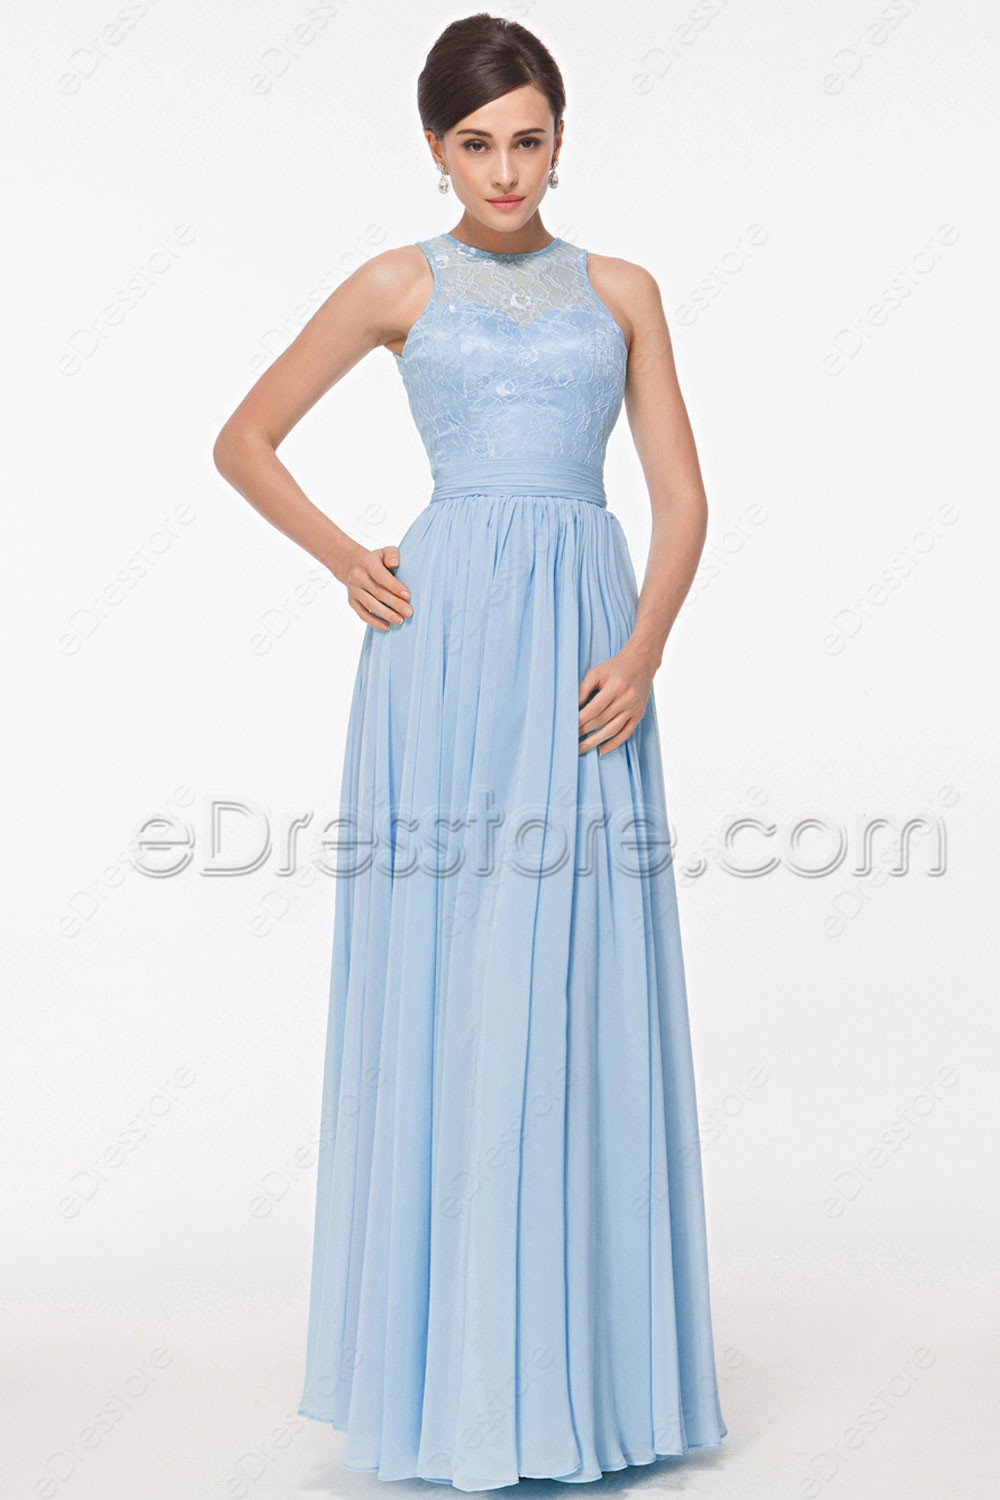 Lace light blue bridesmaid dresses key hole back ombrellifo Image collections